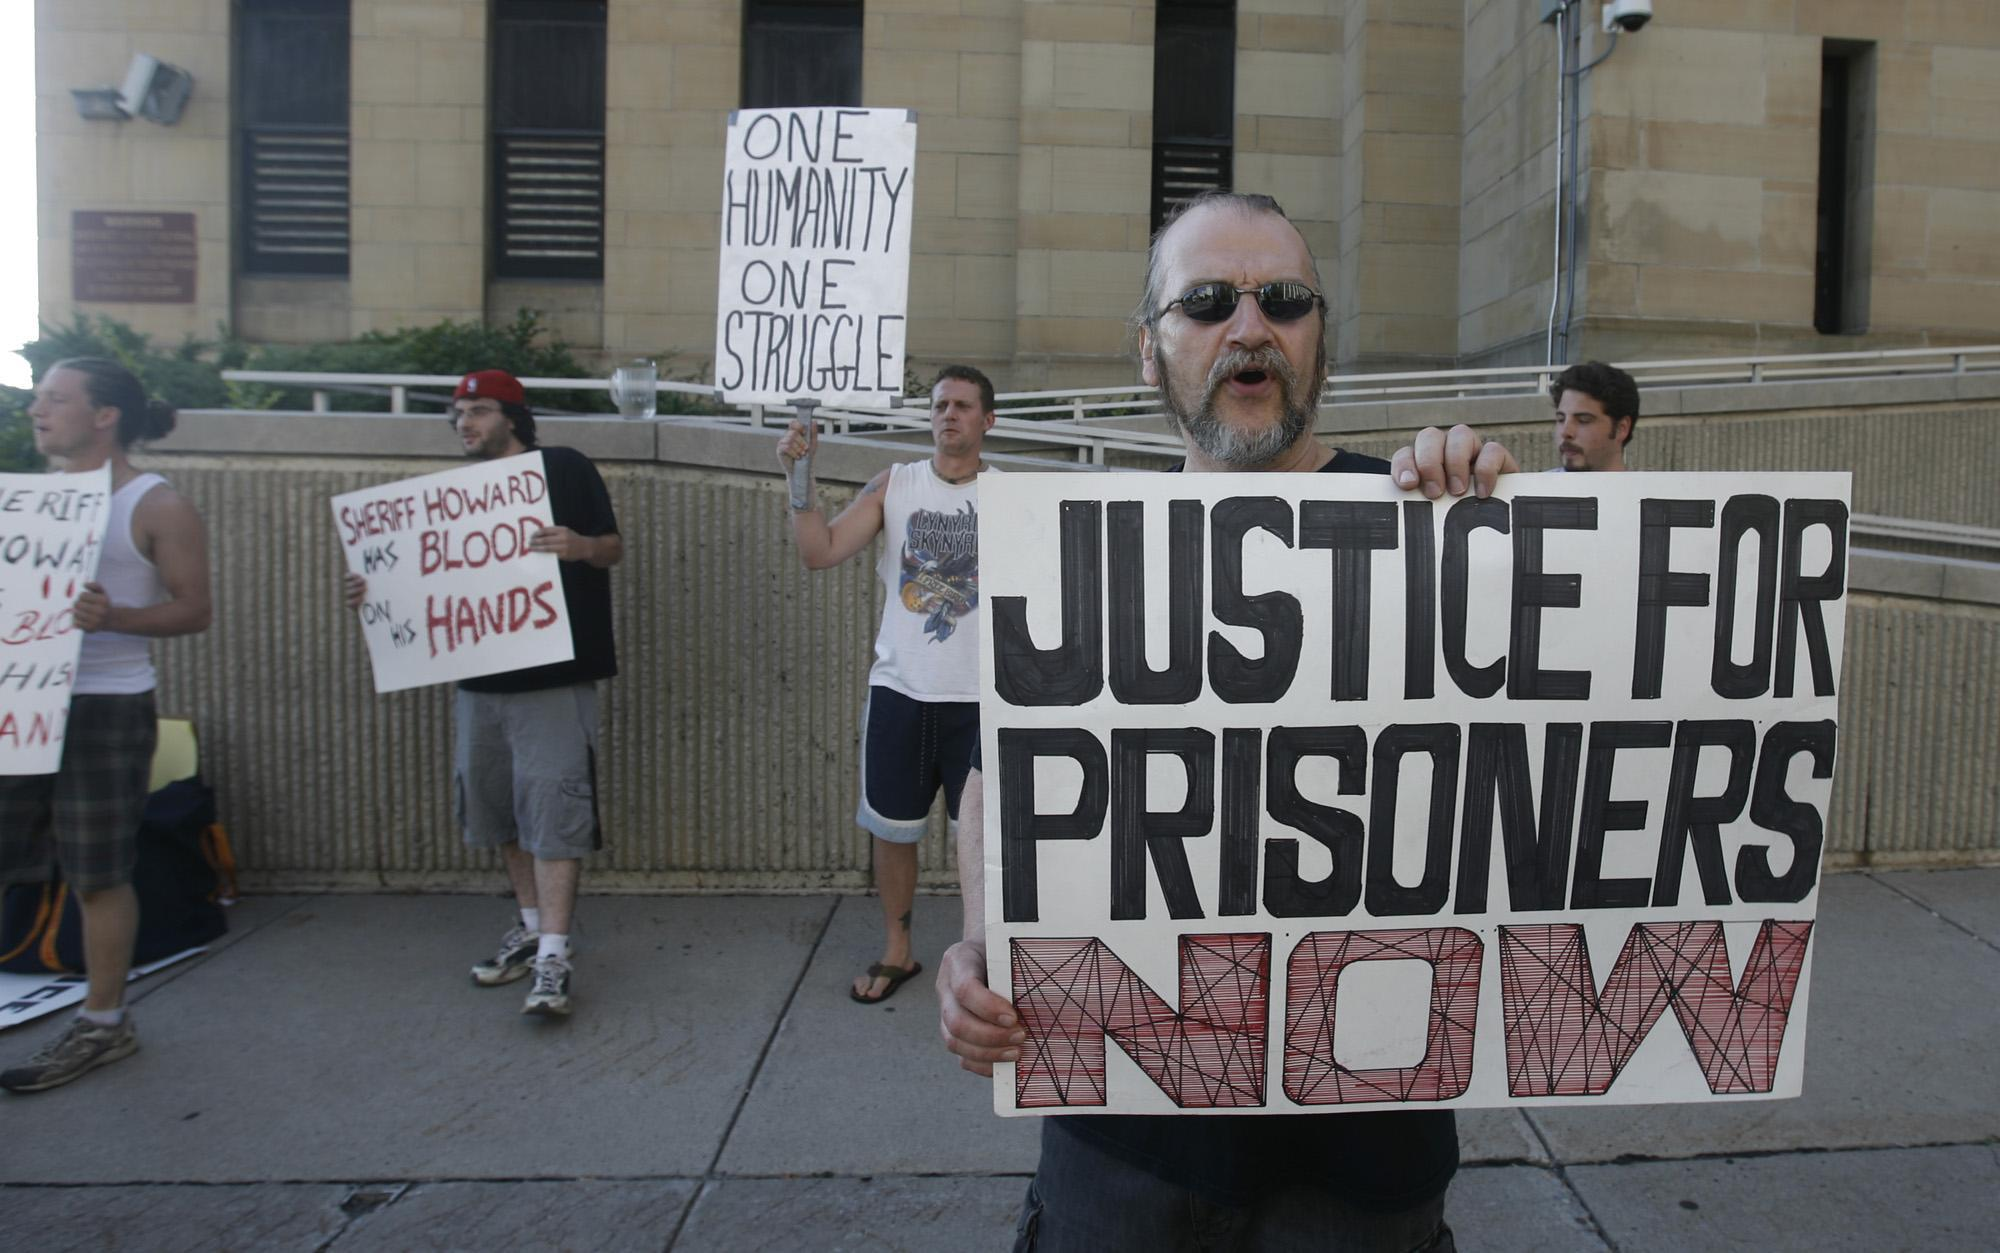 Instead of addressing the types of assaults and suicide attempts that brought these protesters to the Erie County Holding Center a few years ago, Sheriff Howard's staff has used misleading language to keep state monitors in the dark about what's really happening inside his jails. (John Hickey/News file photo)